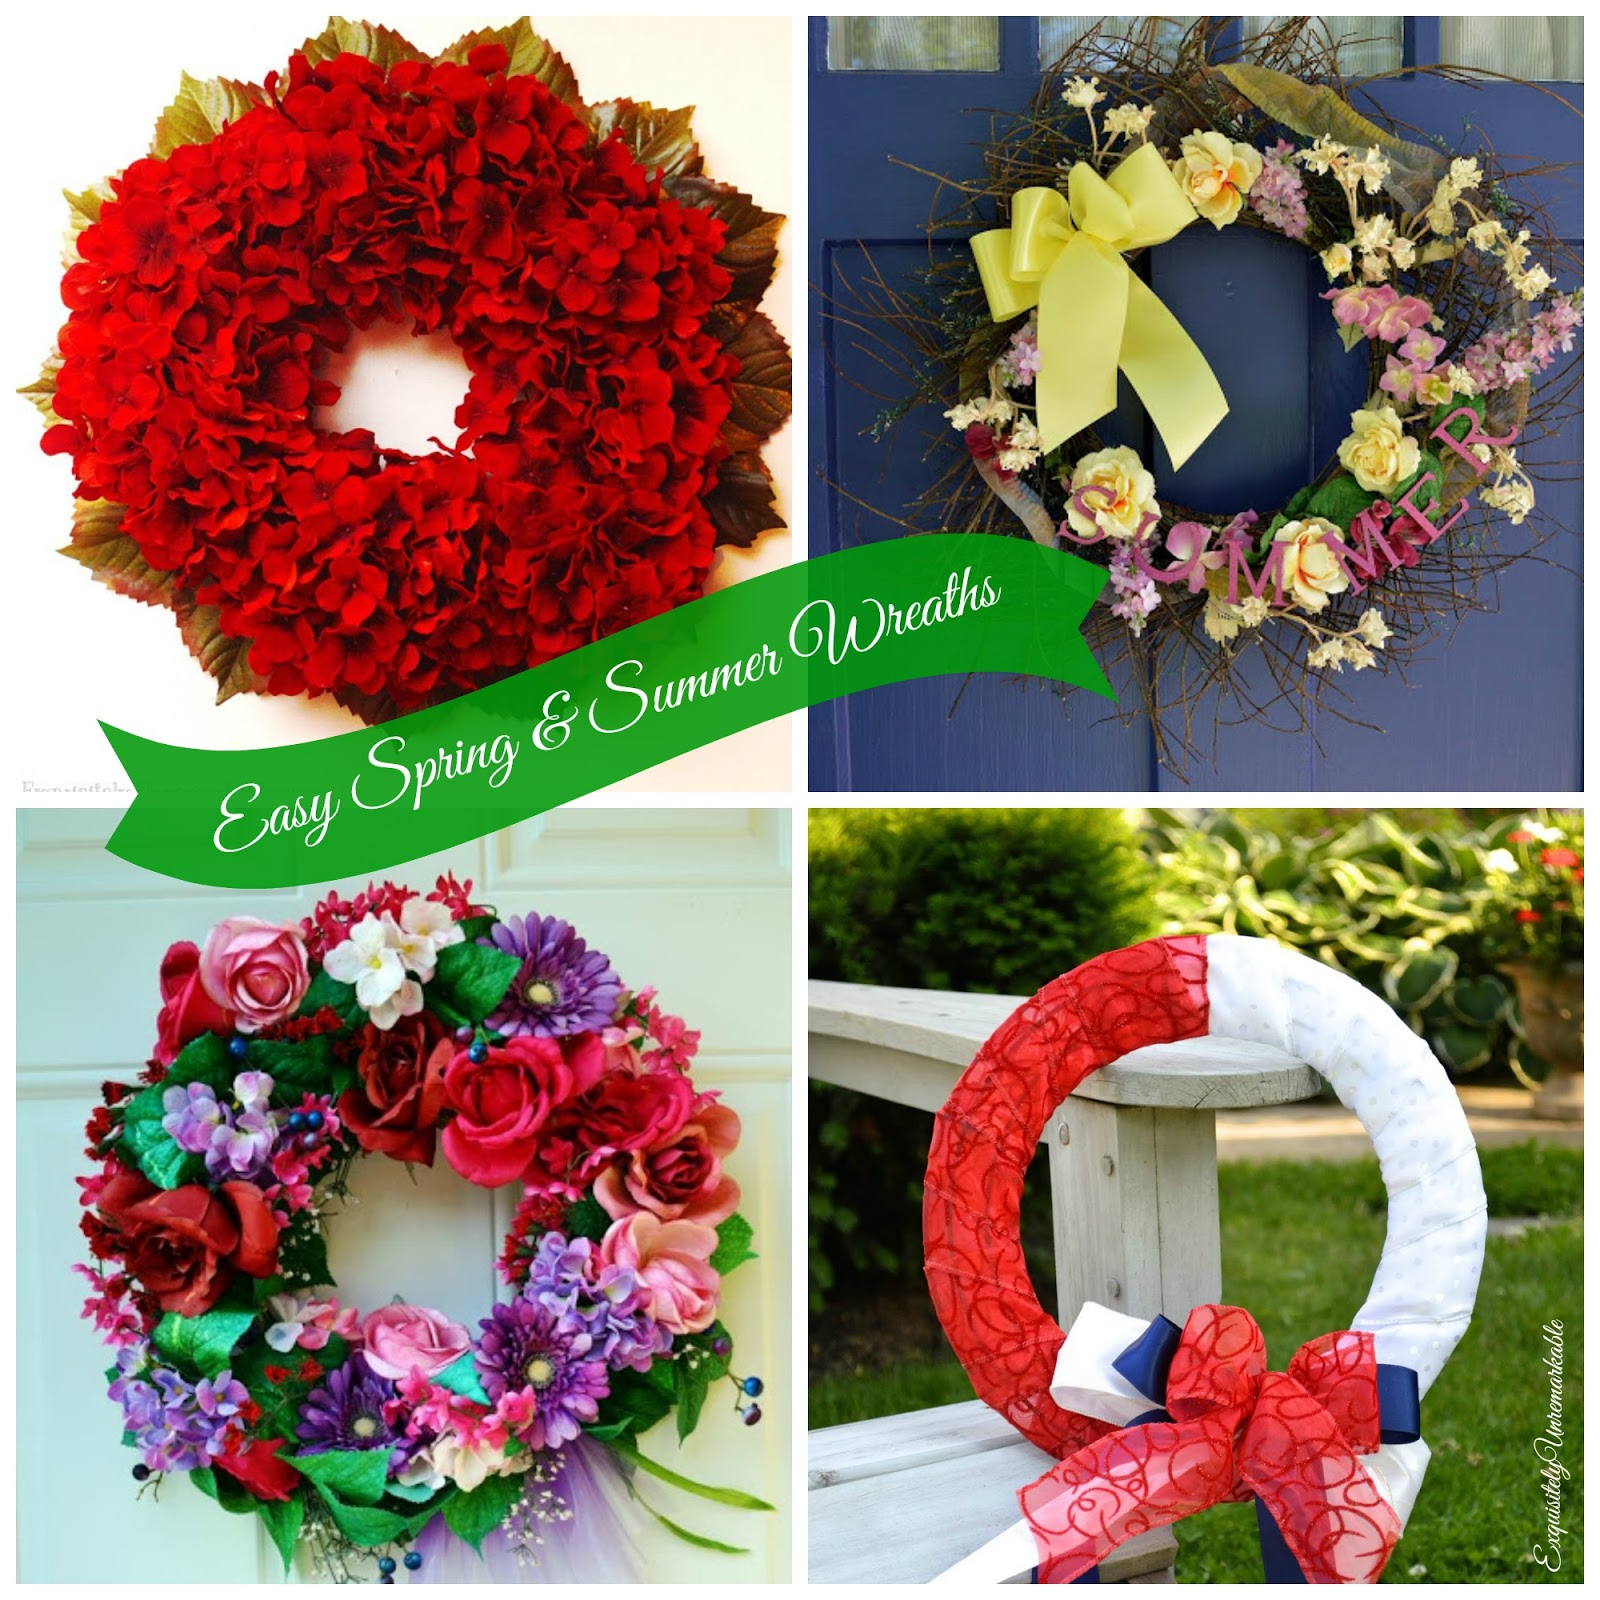 Easy Spring and Summer Wreaths